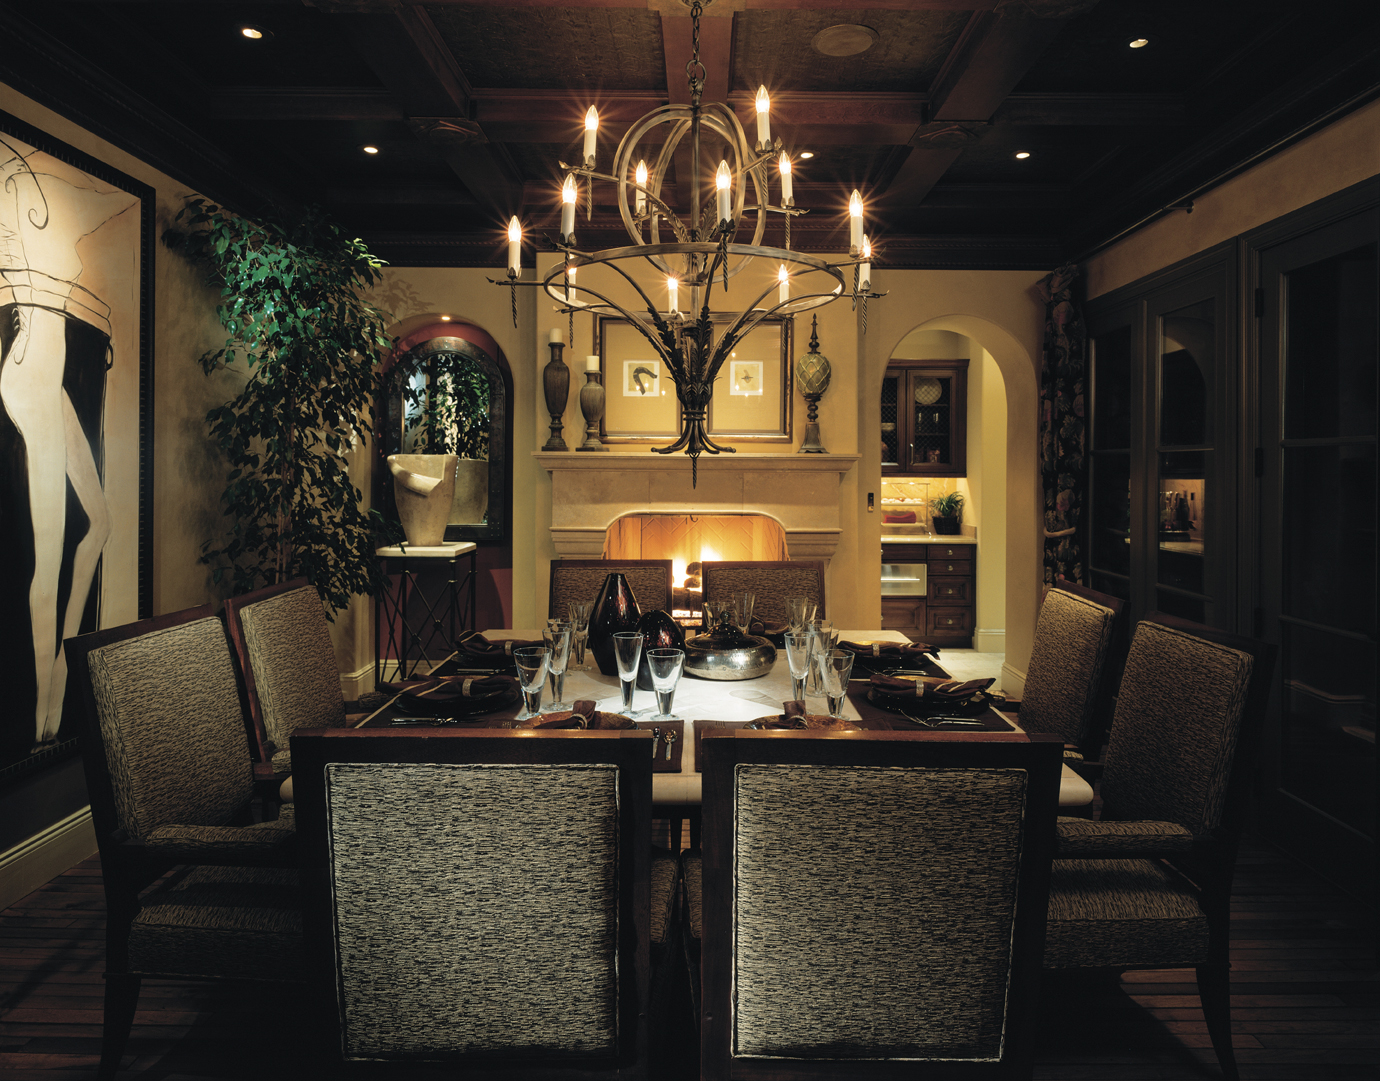 Unique dining room lighting large and beautiful photos for Unique dining room decor